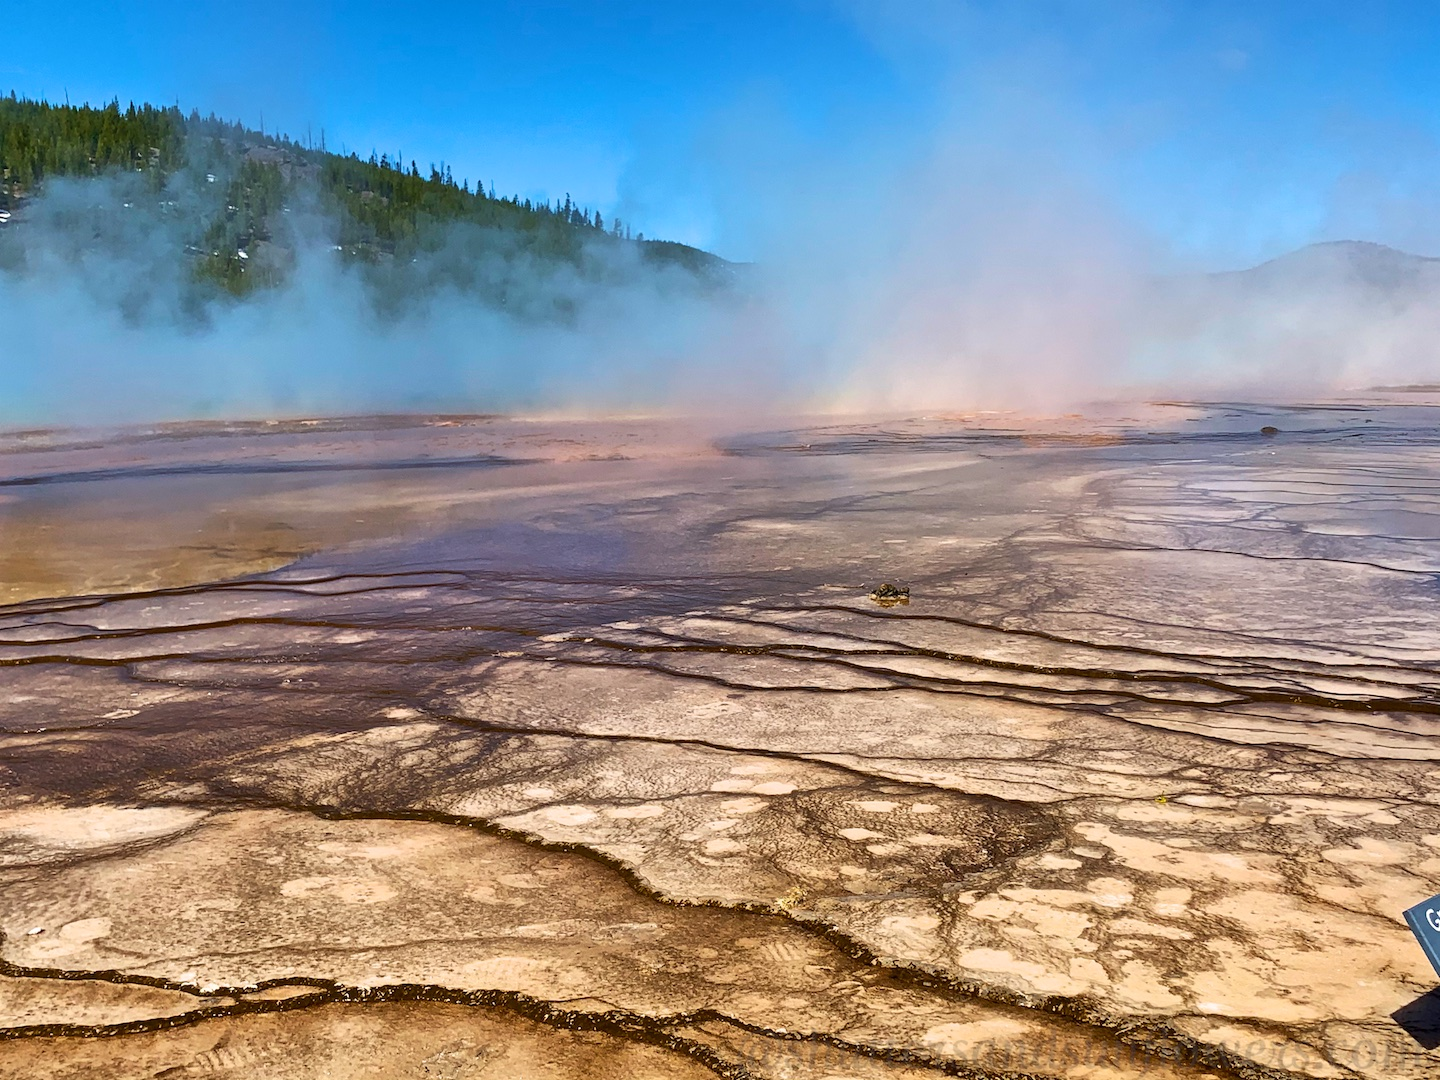 Microbial mat by Grand Prismatic Spring, Yellowstone National Park, USA